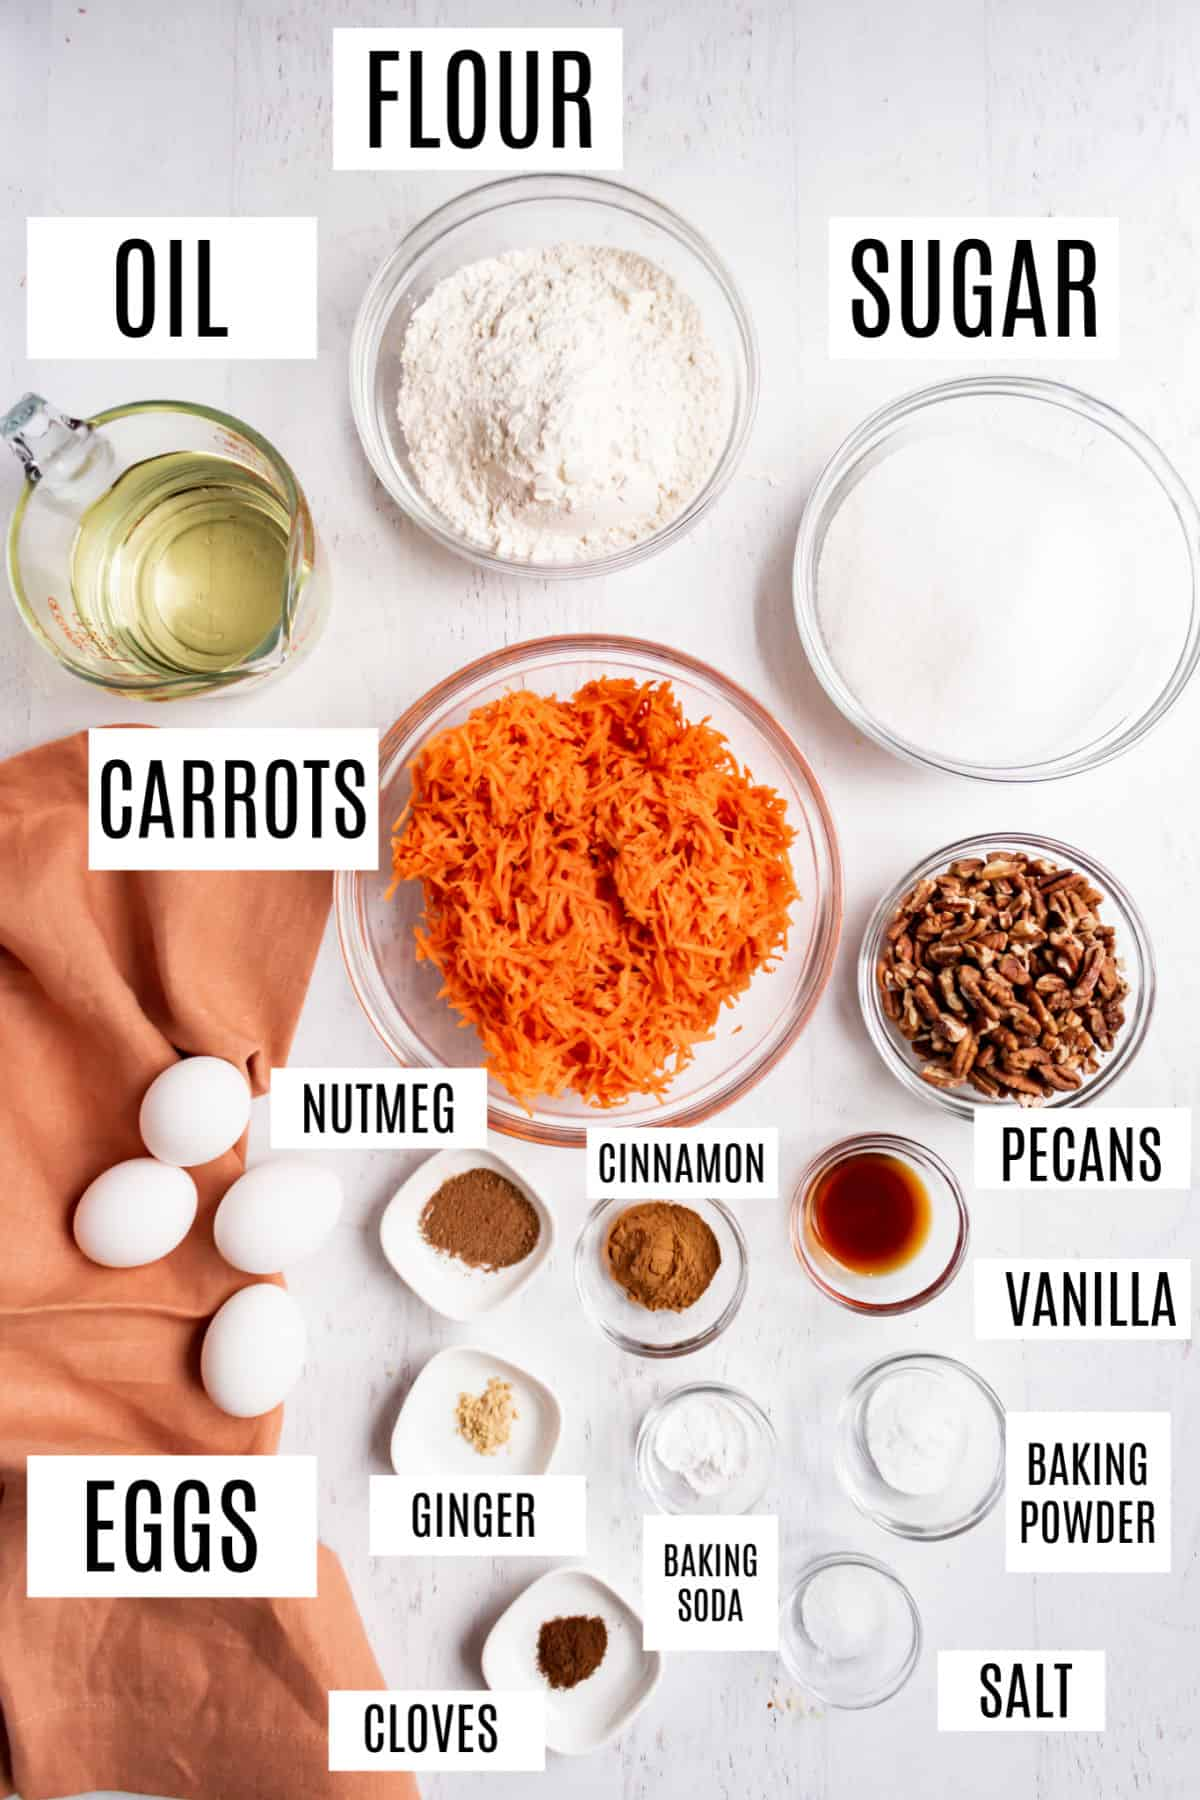 Ingredients needed to make a carrot cake.